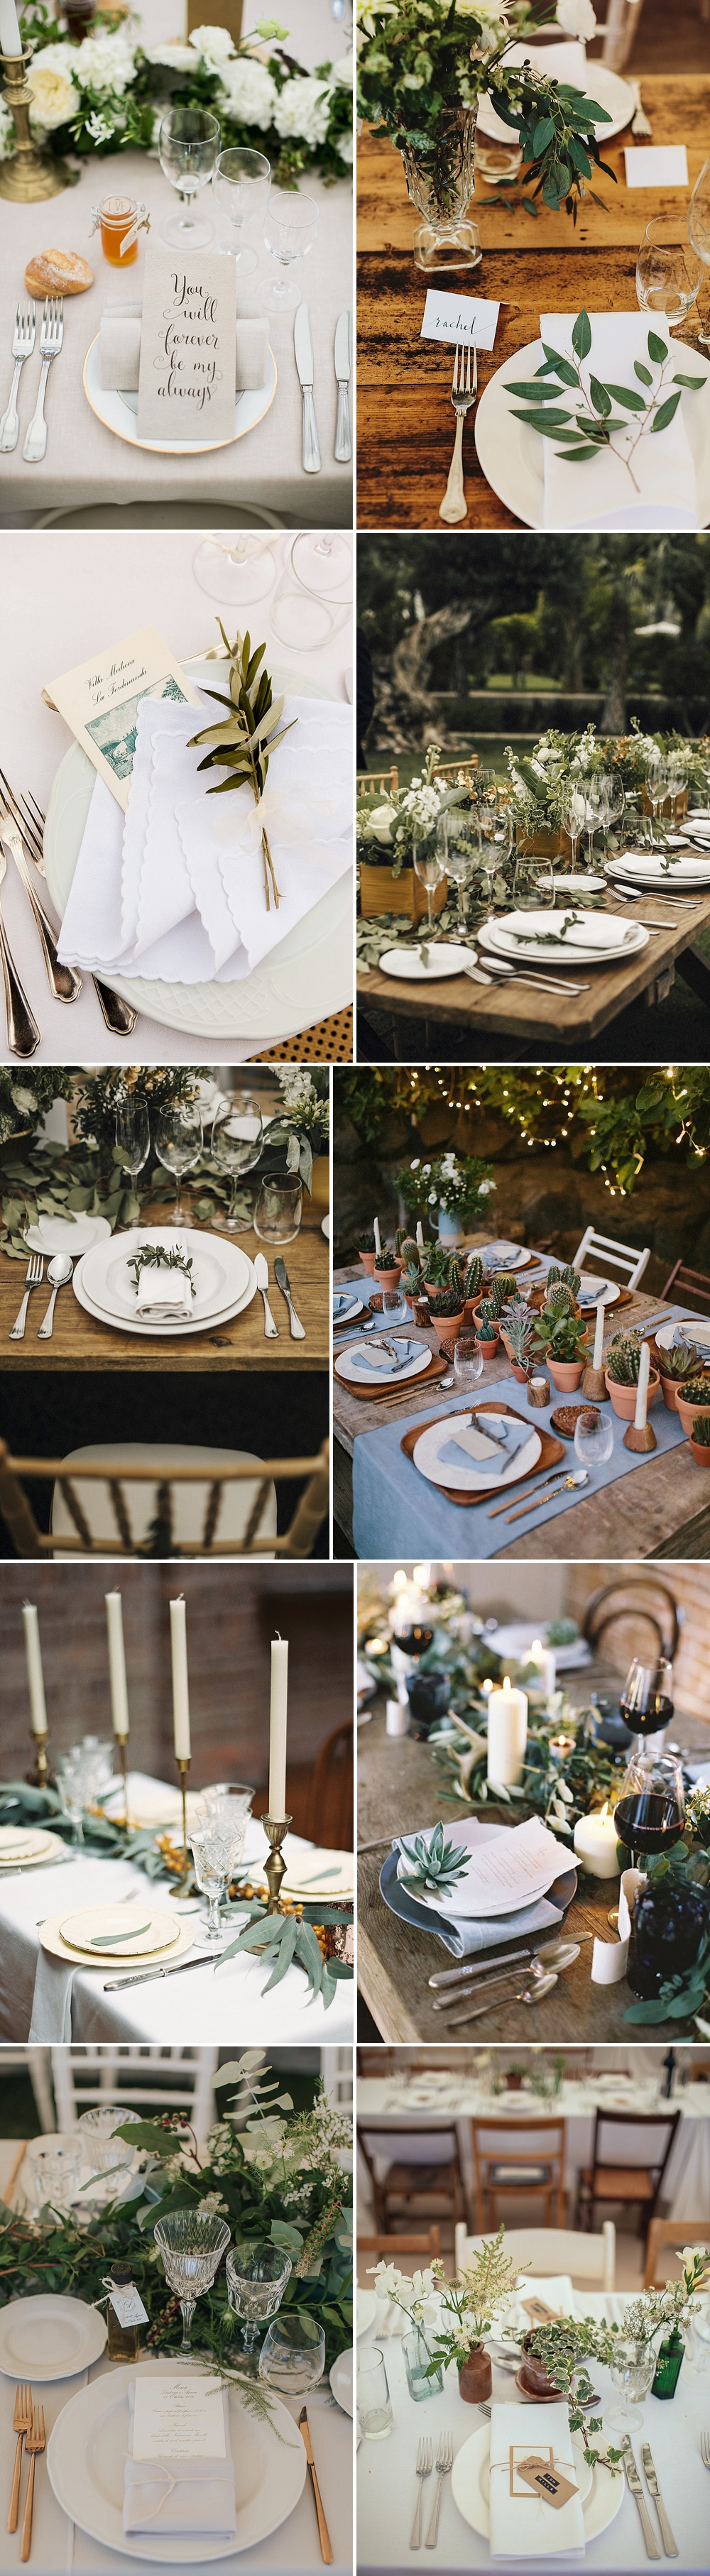 Place Settings For Weddings Using Foliage